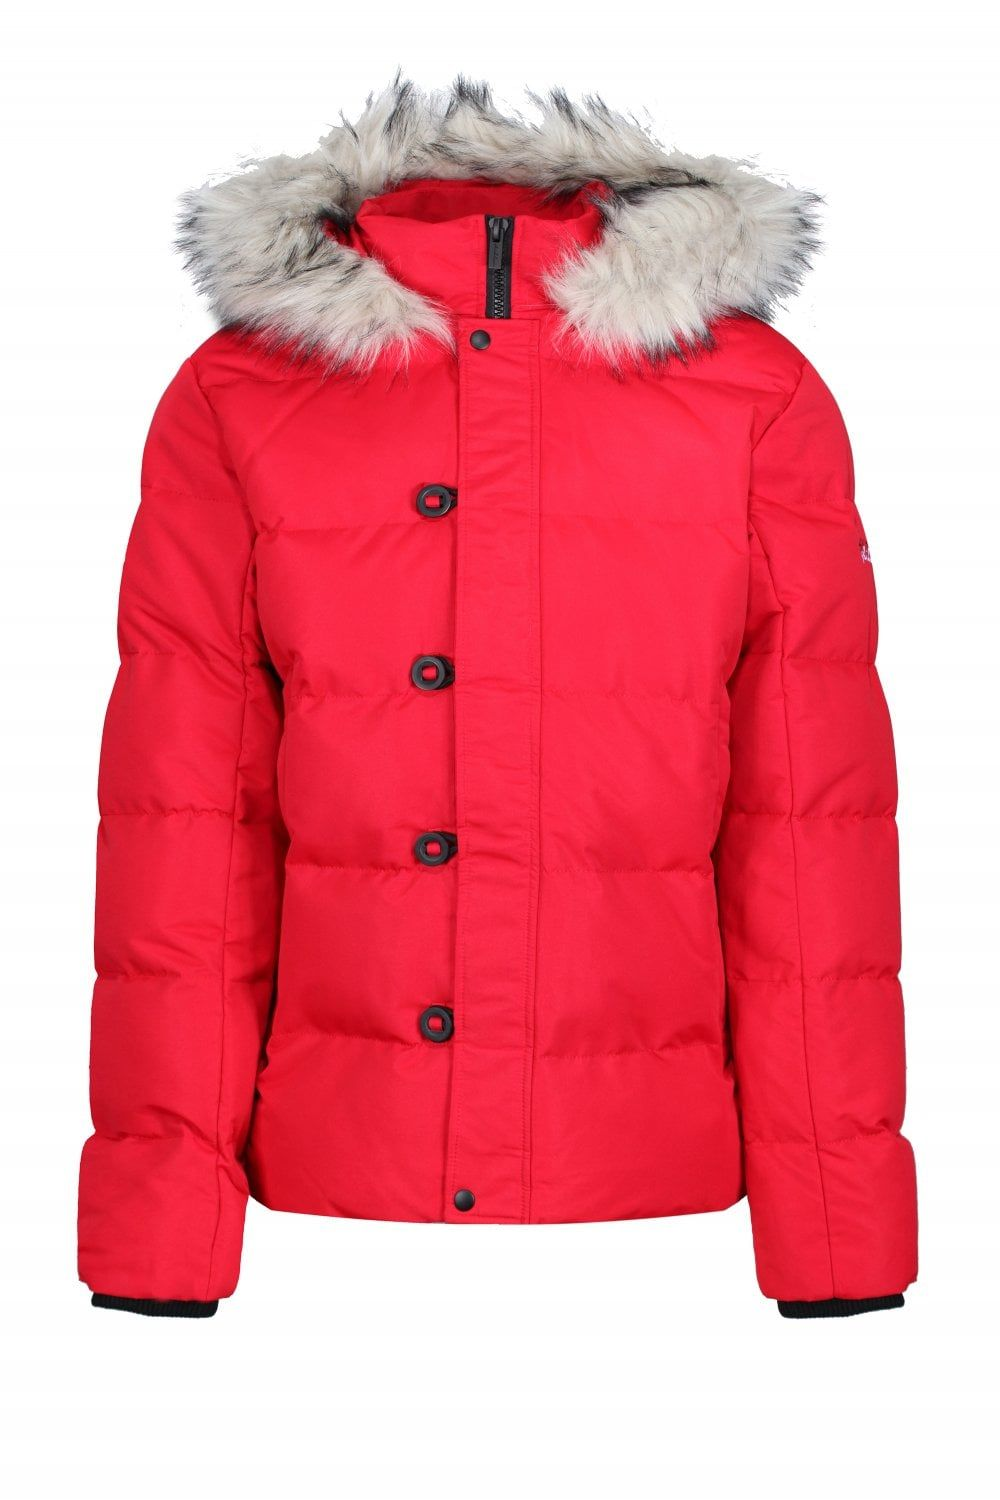 Red Puffer Jacket With Fur Hood Rodak International Red Puffer Jacket Fur Hood Jacket Puffer Jacket With Fur [ 1500 x 1000 Pixel ]